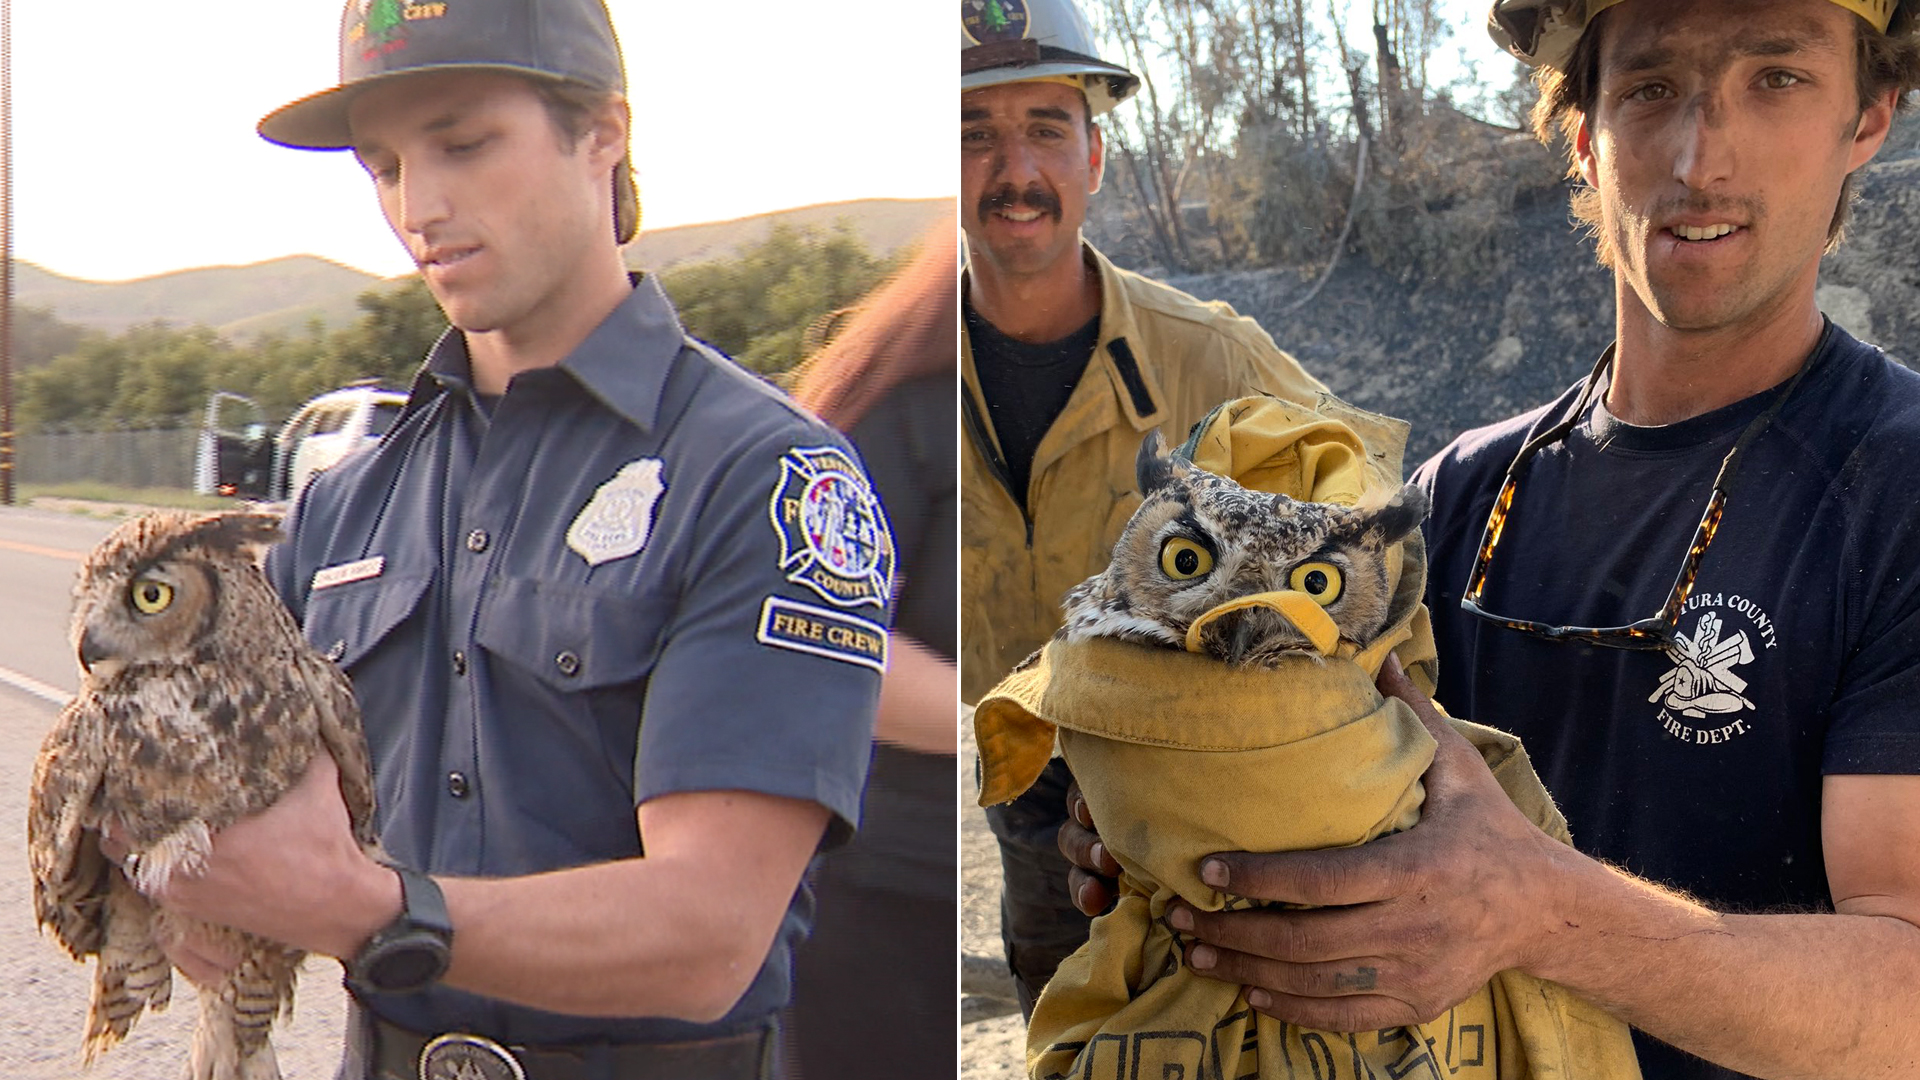 Firefighter Caleb Amico holds Ram, at left, just before his release back into Ventura County skies on Feb. 26, 2020, and at right, after finding the injured owl on Nov. 2, 2019. (Credit: KTLA / Ventura County Fire Department)